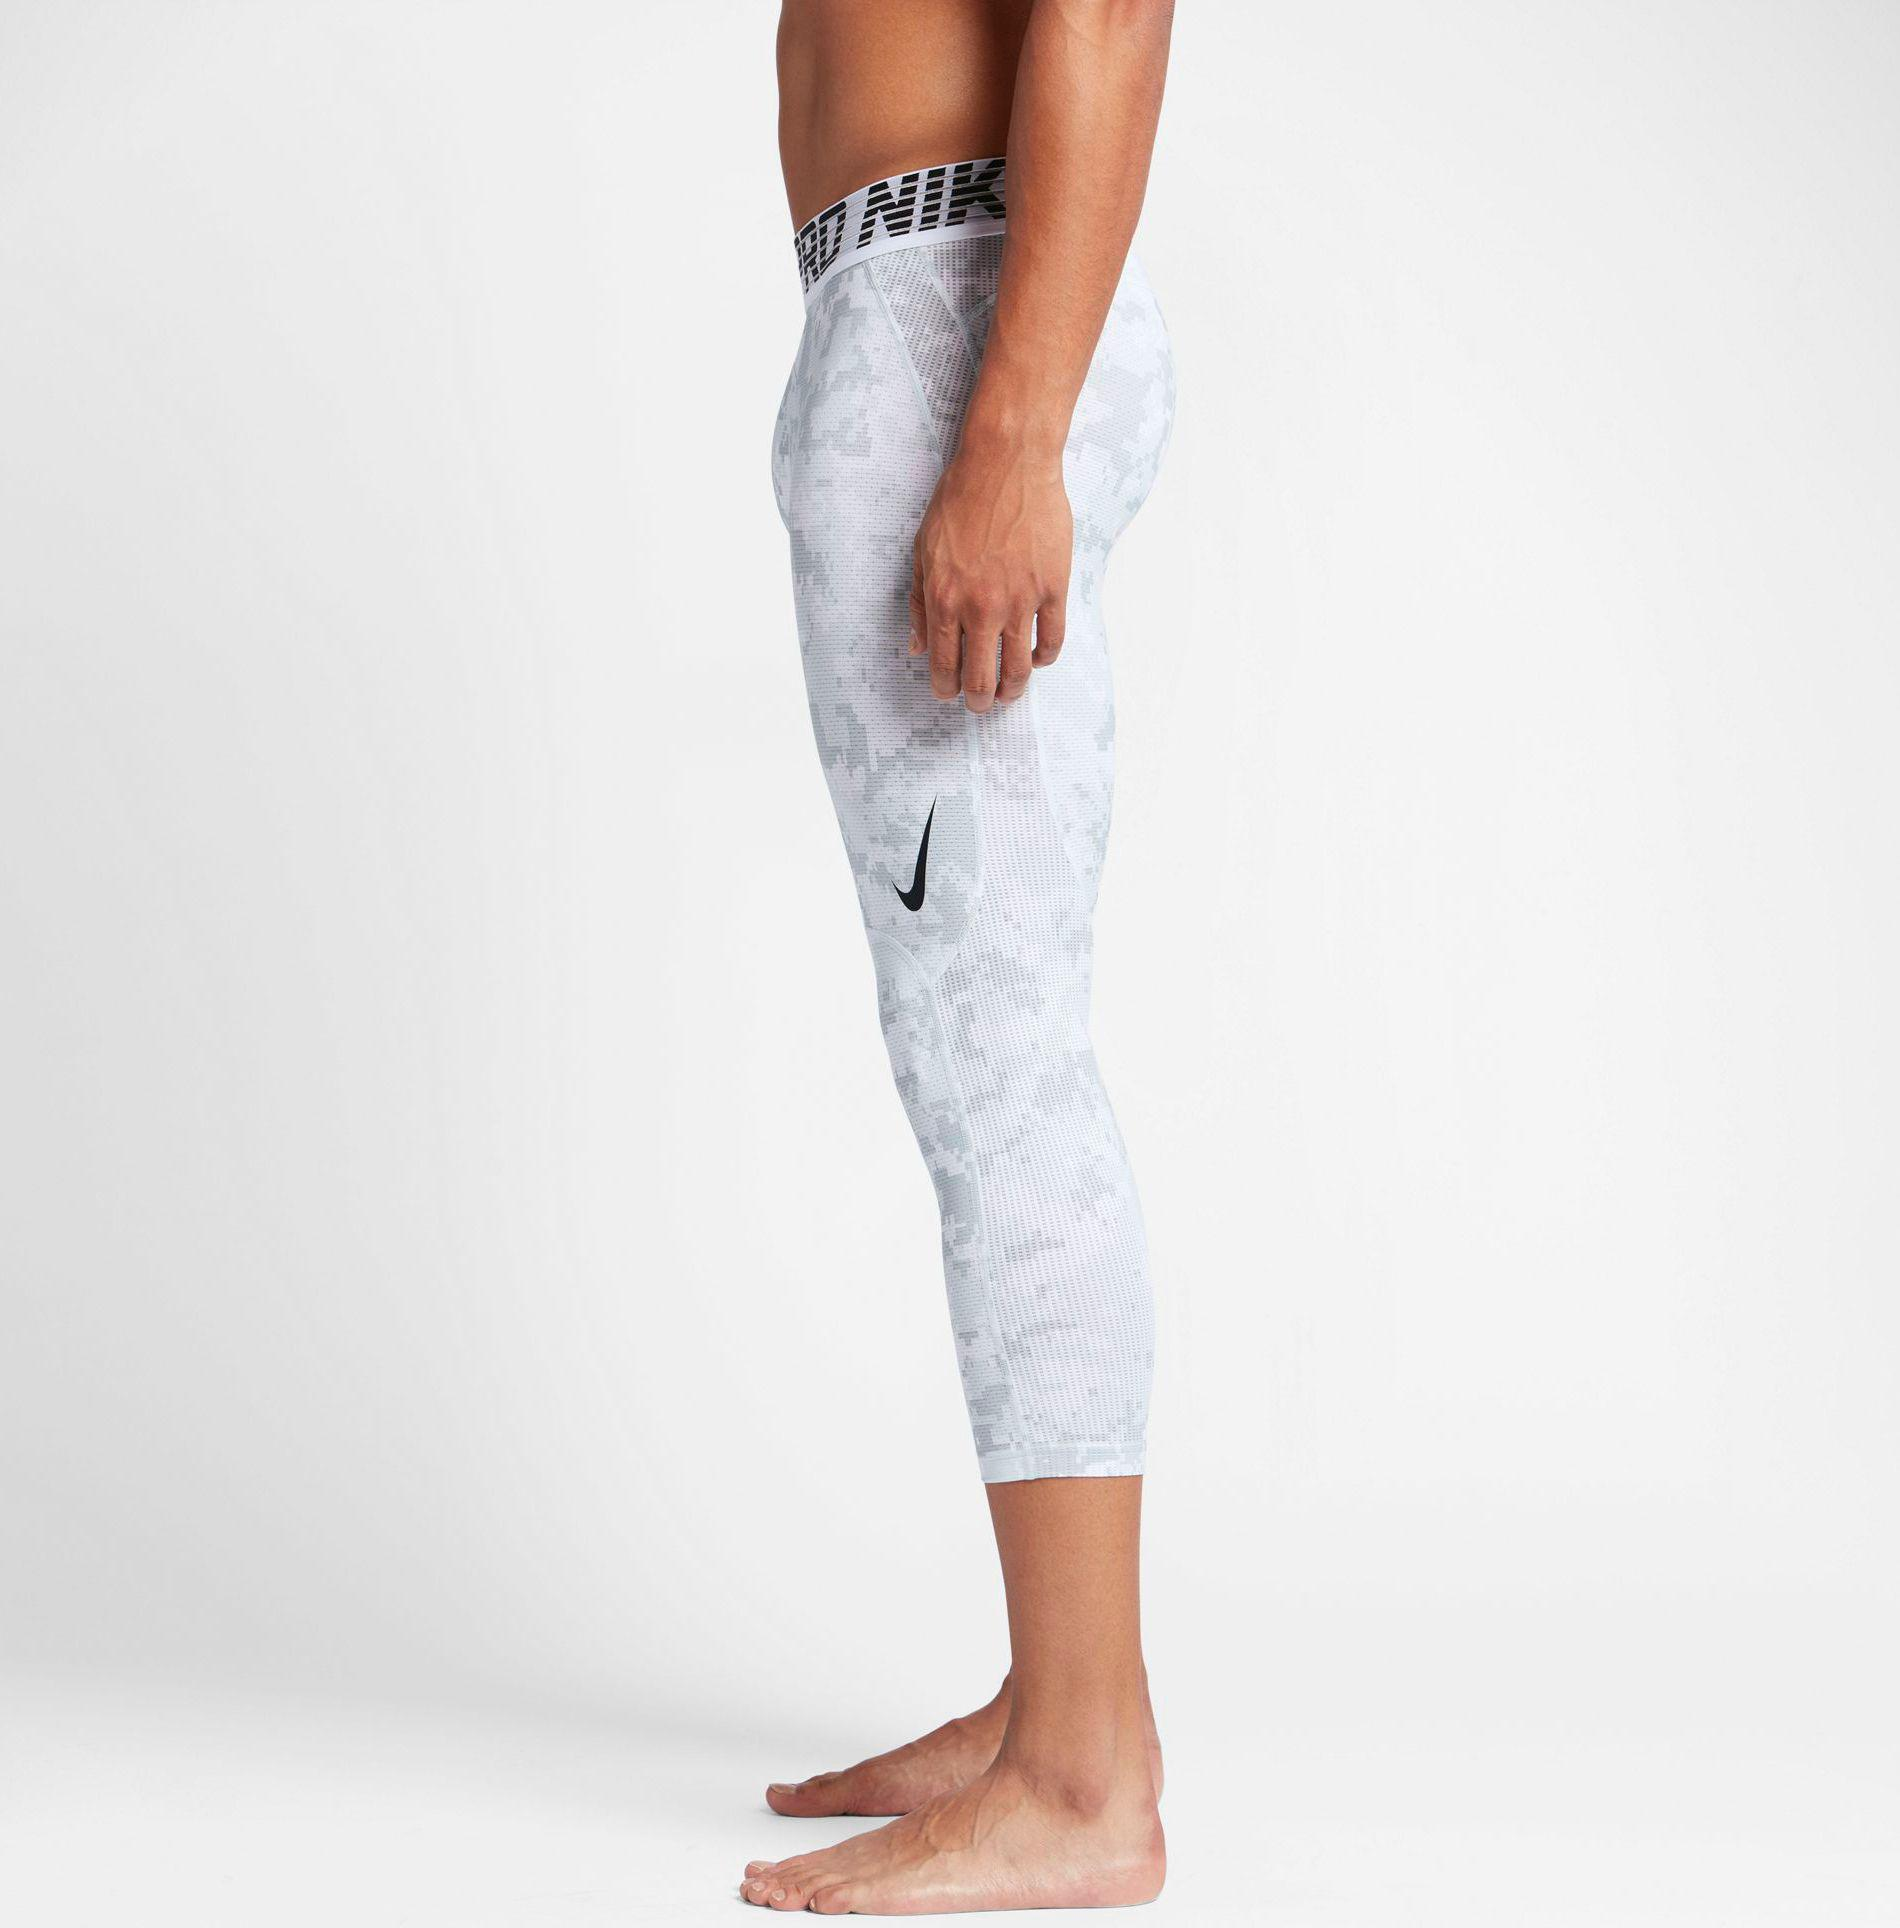 f3f7b1a72bb74 Nike White Pro Hypercool 3/4 Length Digi Camo Printed Compression Tights  for men